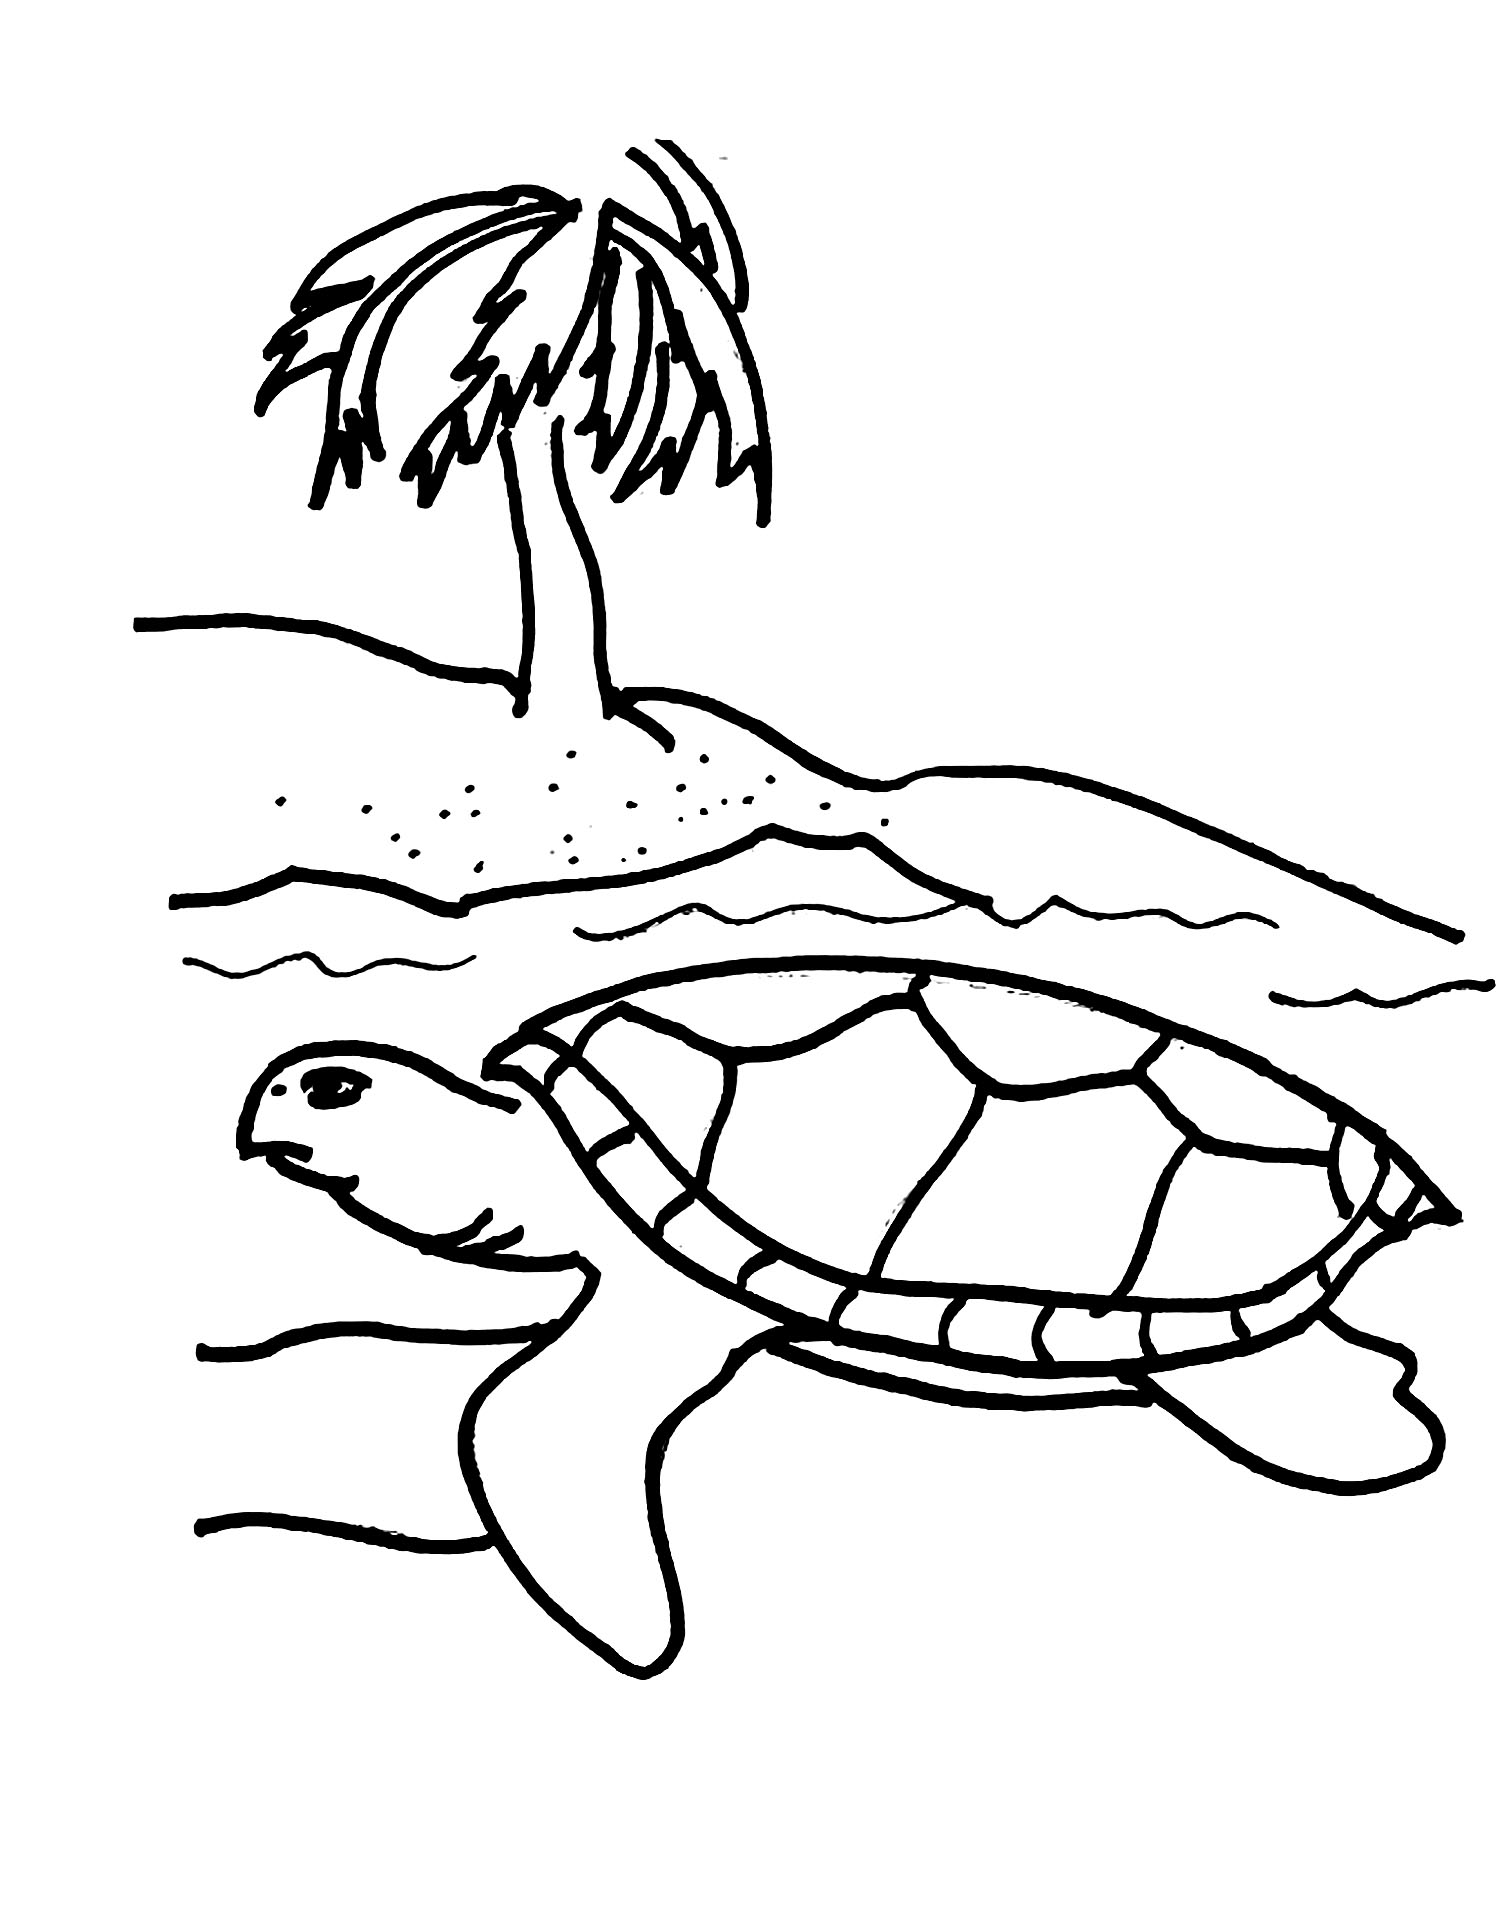 Turtles coloring page to download